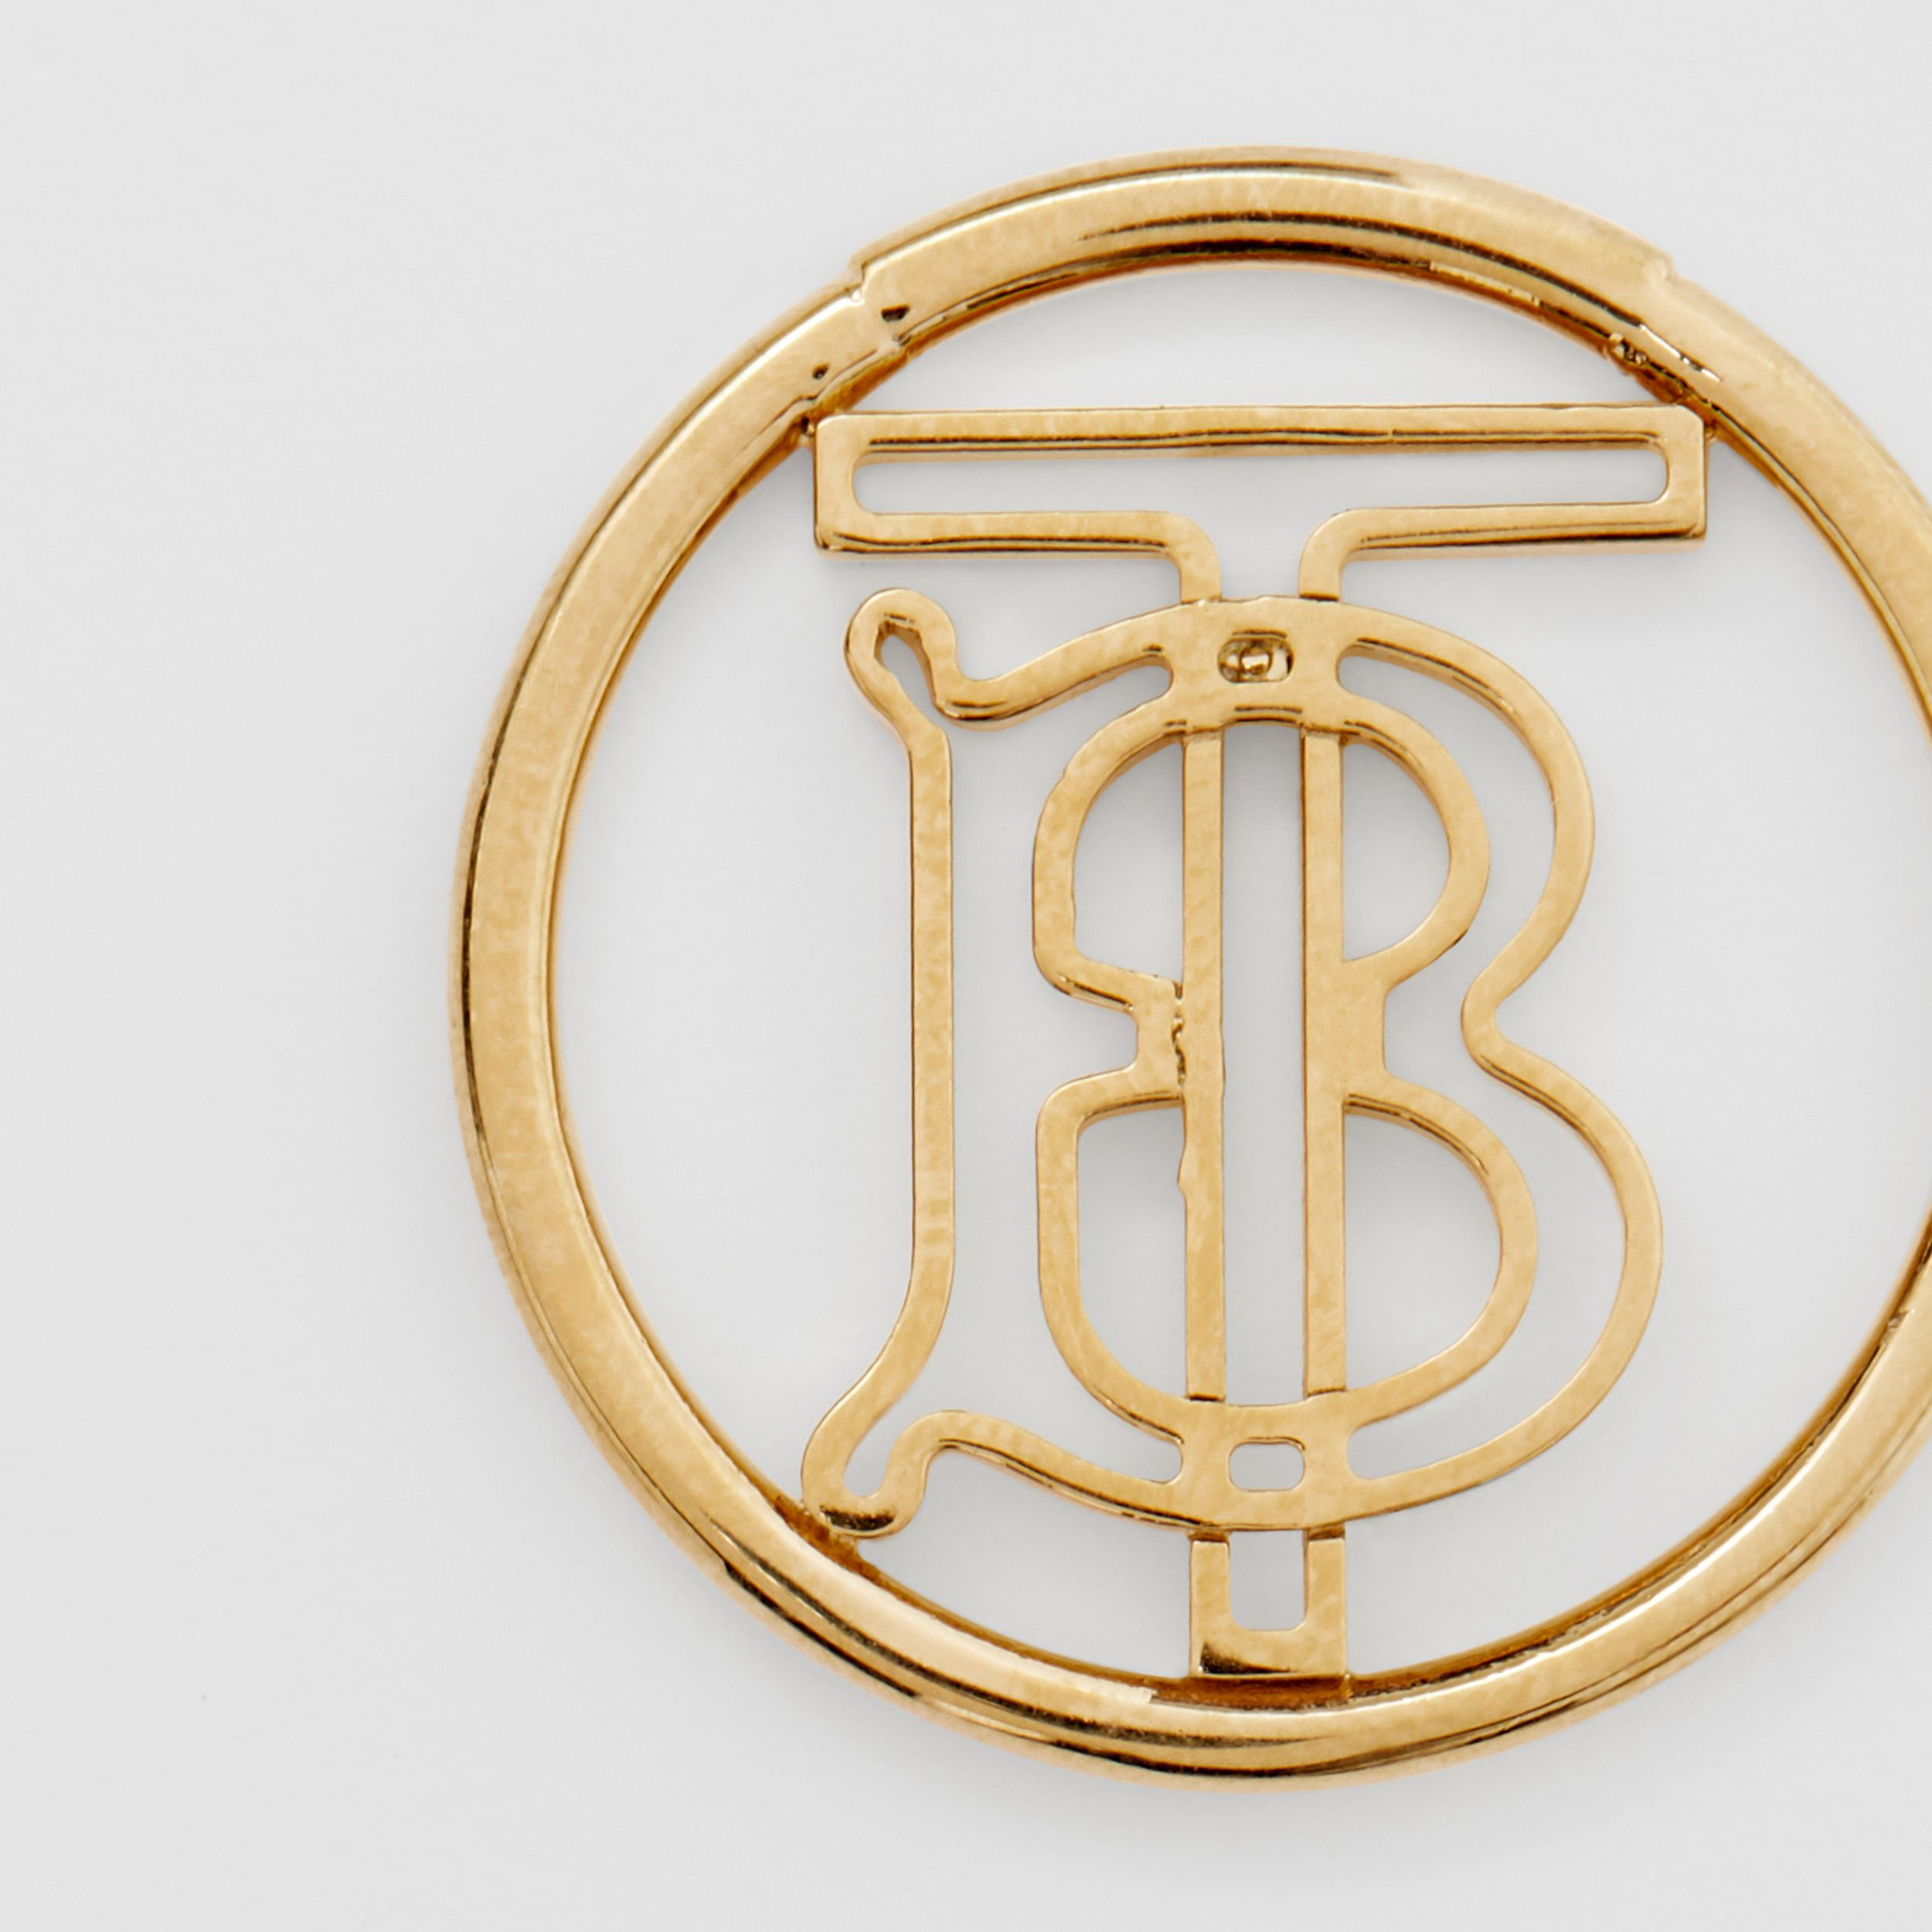 Gold-plated Monogram Motif Earrings in Light - Women | Burberry - 2